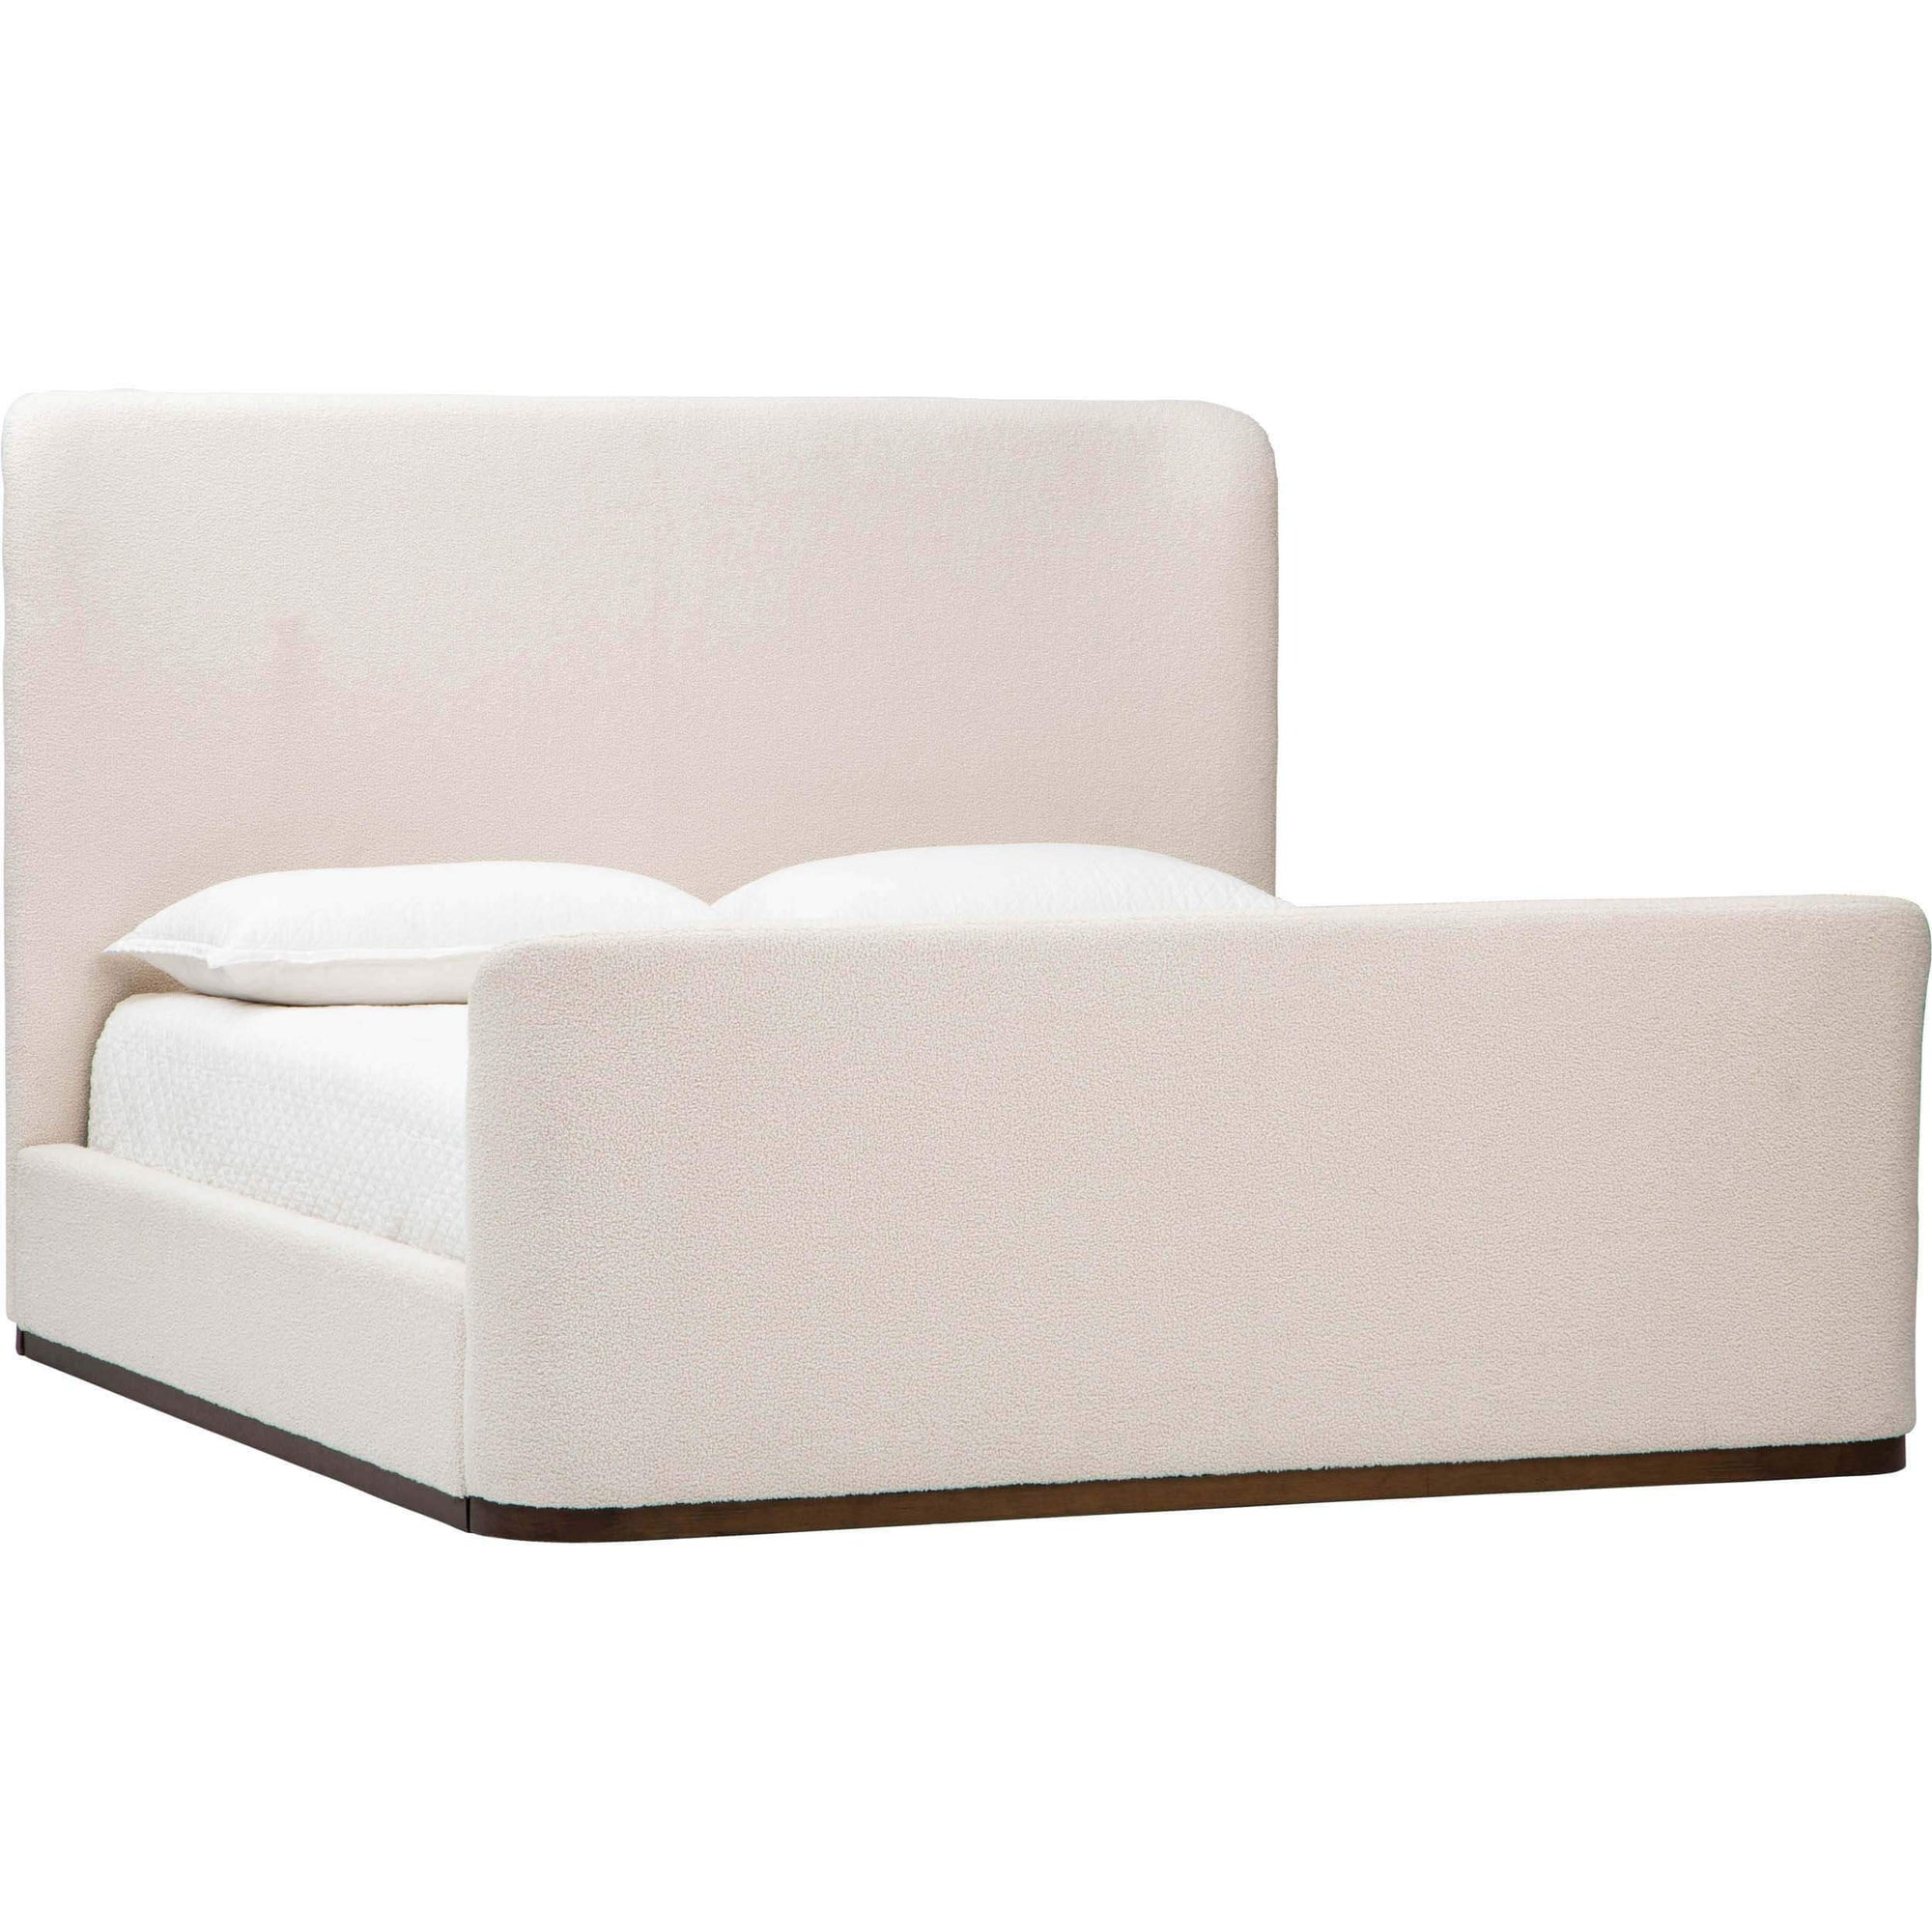 Avery Bed Ivory Cloud High Fashion Home